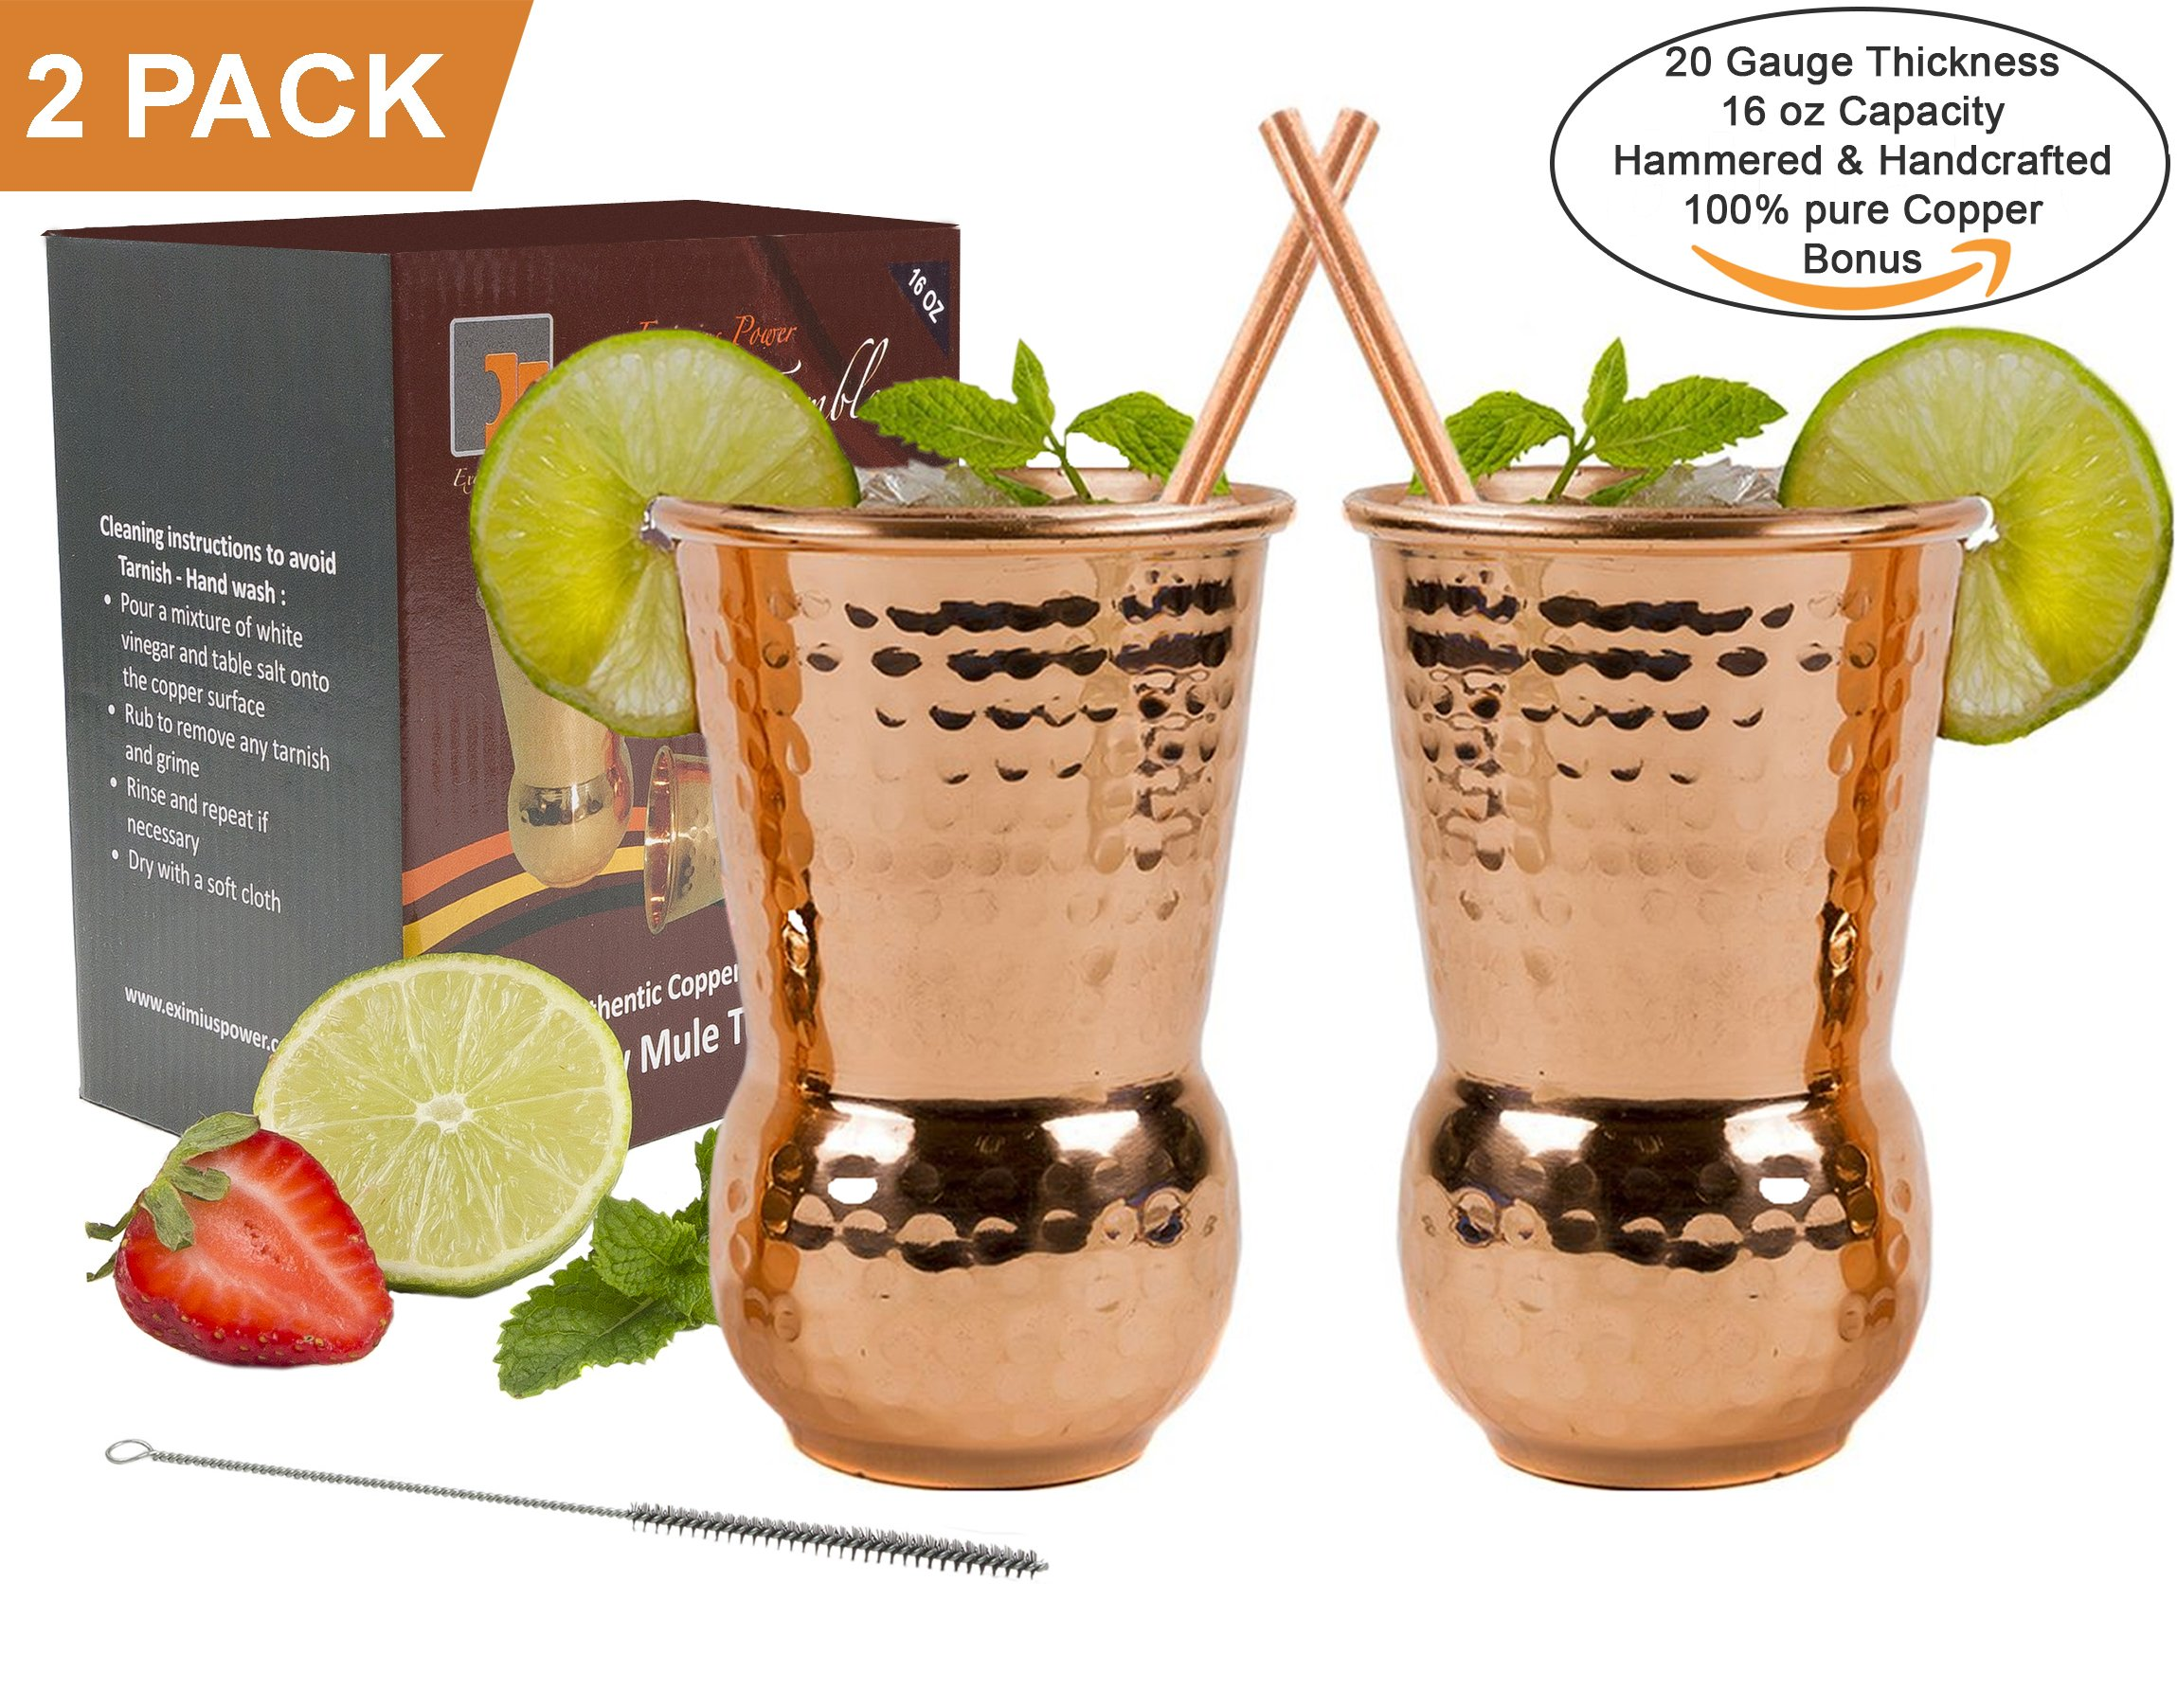 EXTRA THICK HEFTY 20 Gauge 16oz Handcrafted Eximius Power Moscow Mule Copper Mugs - 100% Pure Solid Copper - Food Safe - Hammered Design - Gift Set of 2 - Bonus Straws & a Cleaning Brush